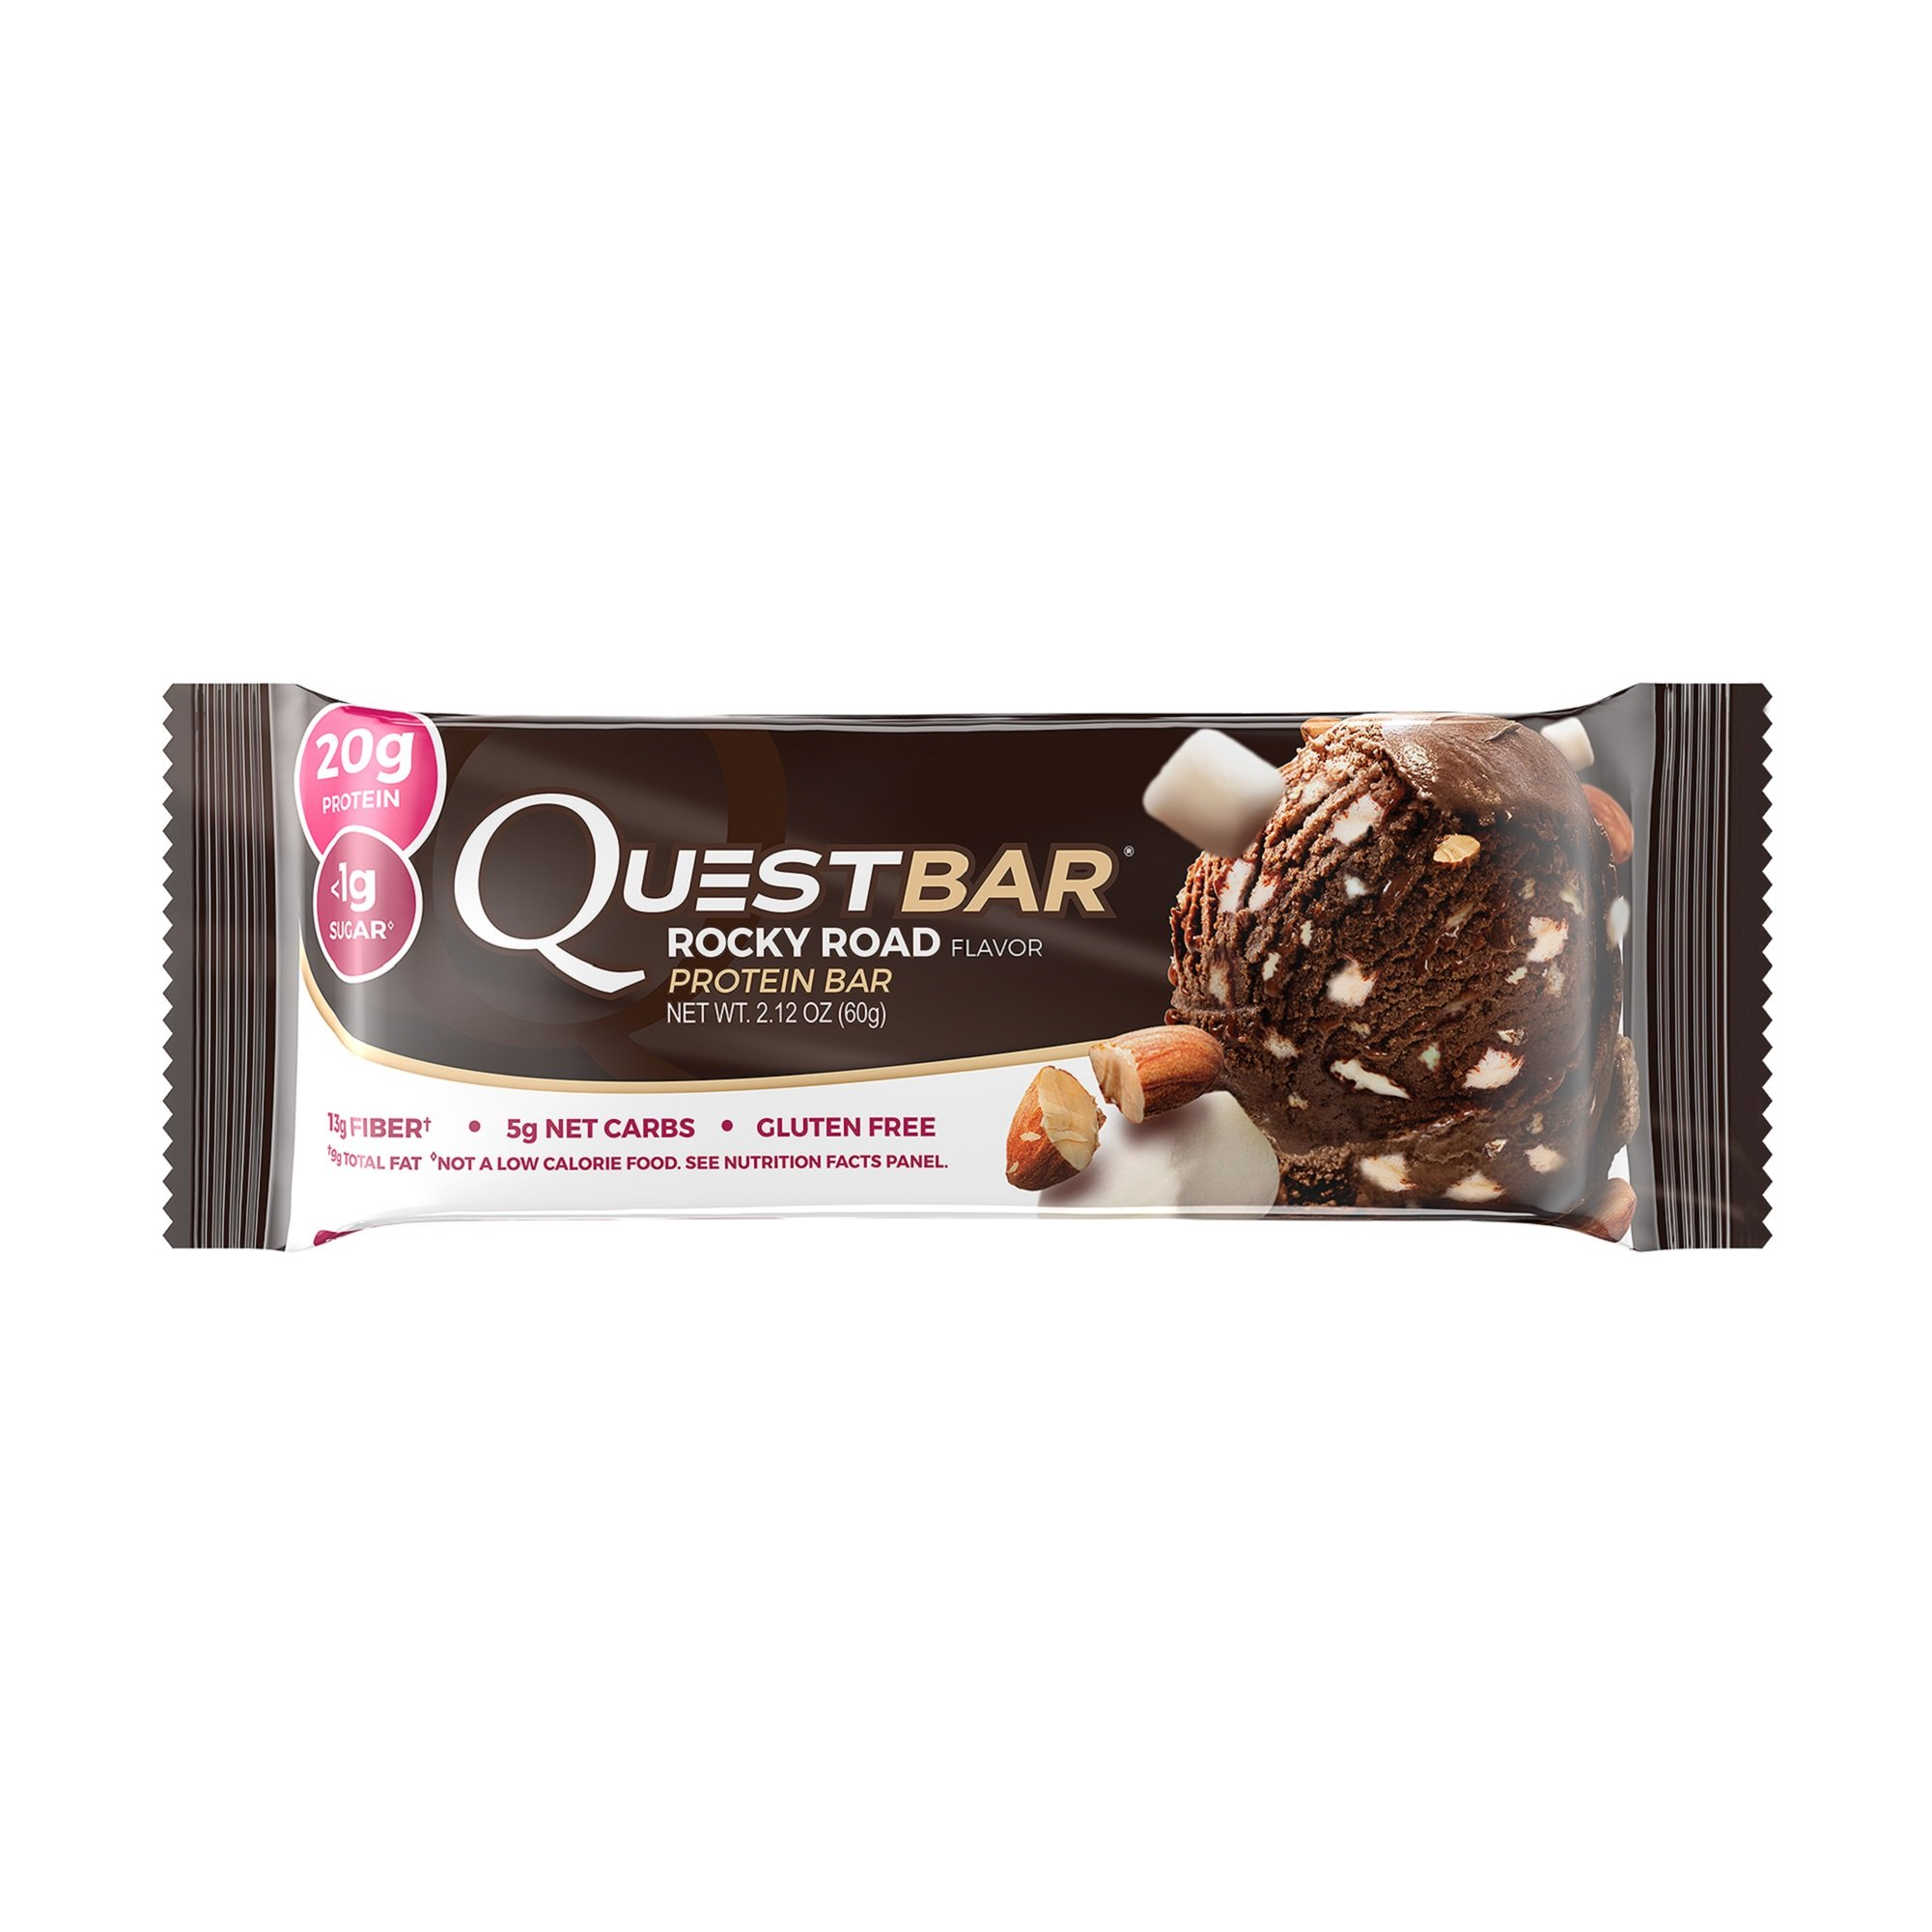 Quest Nutrition Protein Bar, Rocky Road, 20g Protein, 5g Net Carbs, 210 Cals, High Protein Bars, Low Carb Bars, Gluten Free, Soy Free, 2.1 oz Bar, 12 Count